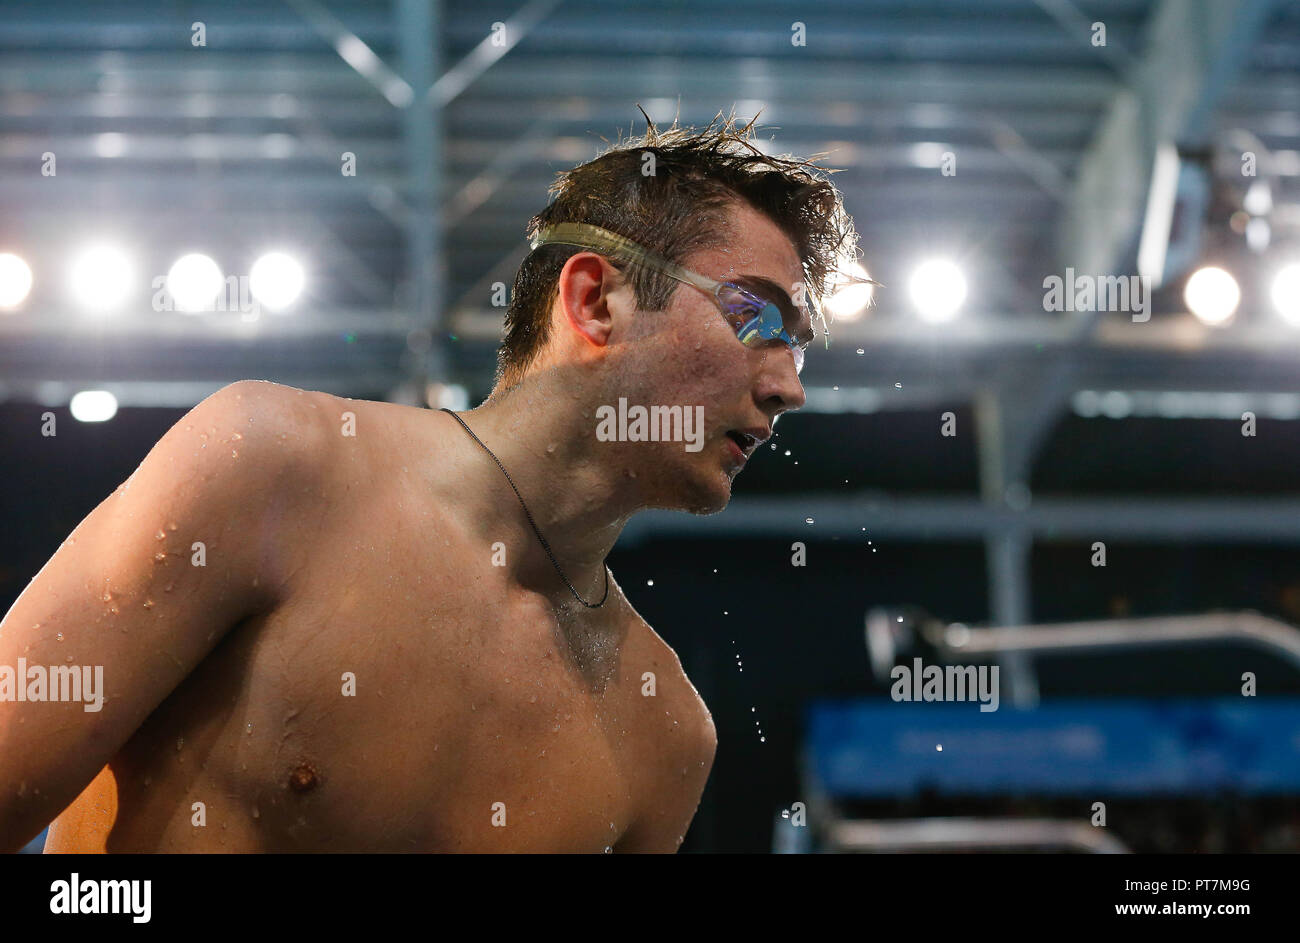 Buenos Aires, Argentina. 07th Oct, 2018. Russian KOLESNIKOV Kliment during semifinal of the 100m backstroke of the Youth Olympic Games Buenos Aires 2018 in the Natatorium of the Olympic Youth Park. Credit: Marcelo Machado de Melo/FotoArena/Alamy Live News - Stock Image